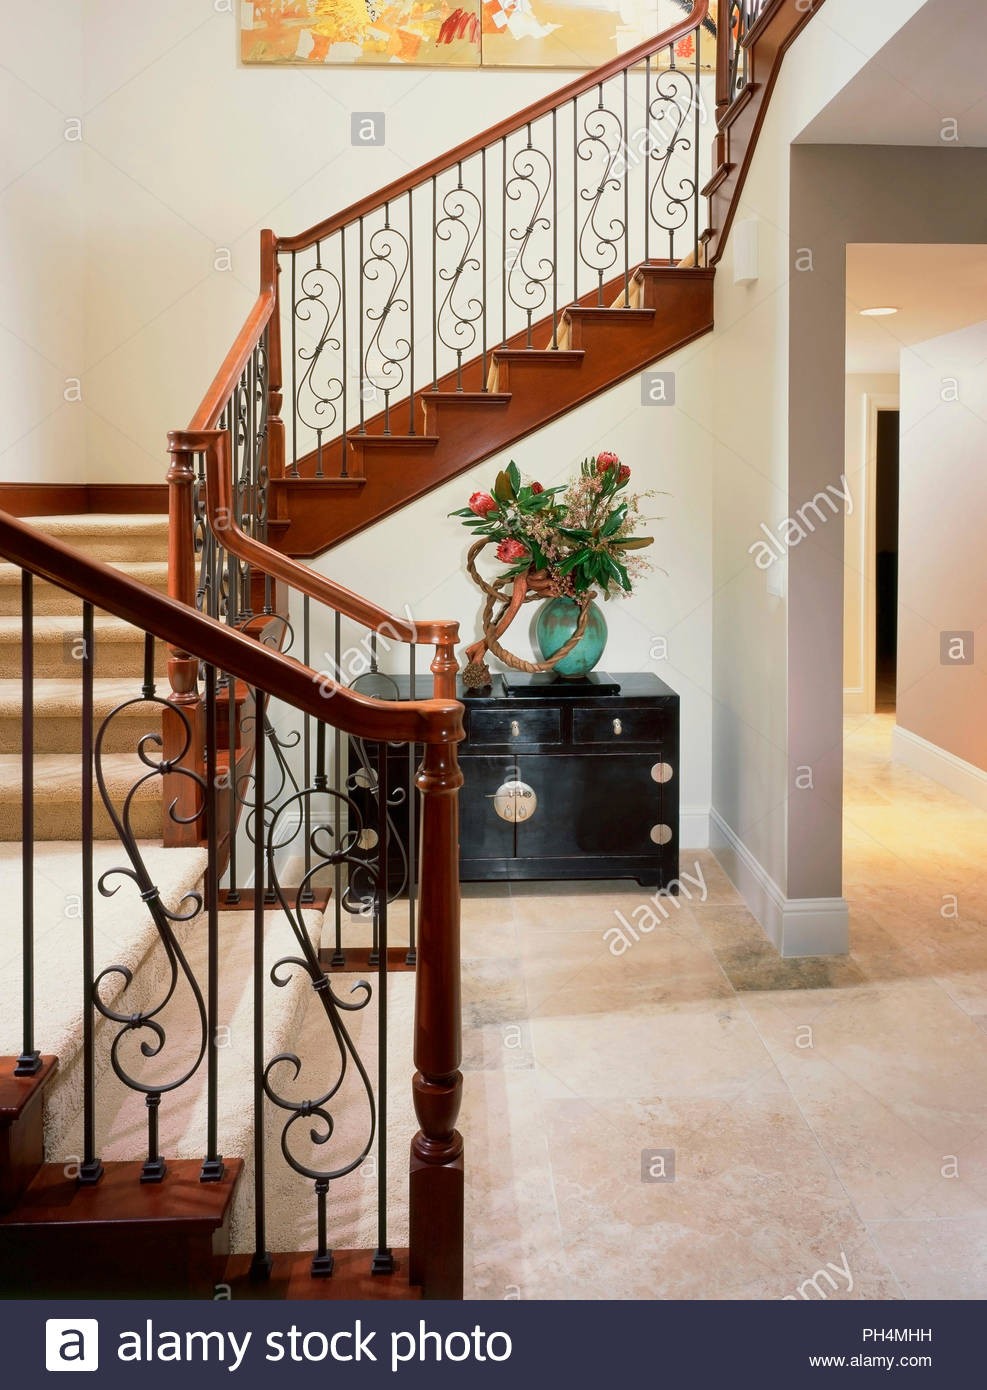 Carpeted staircase - Stock Image